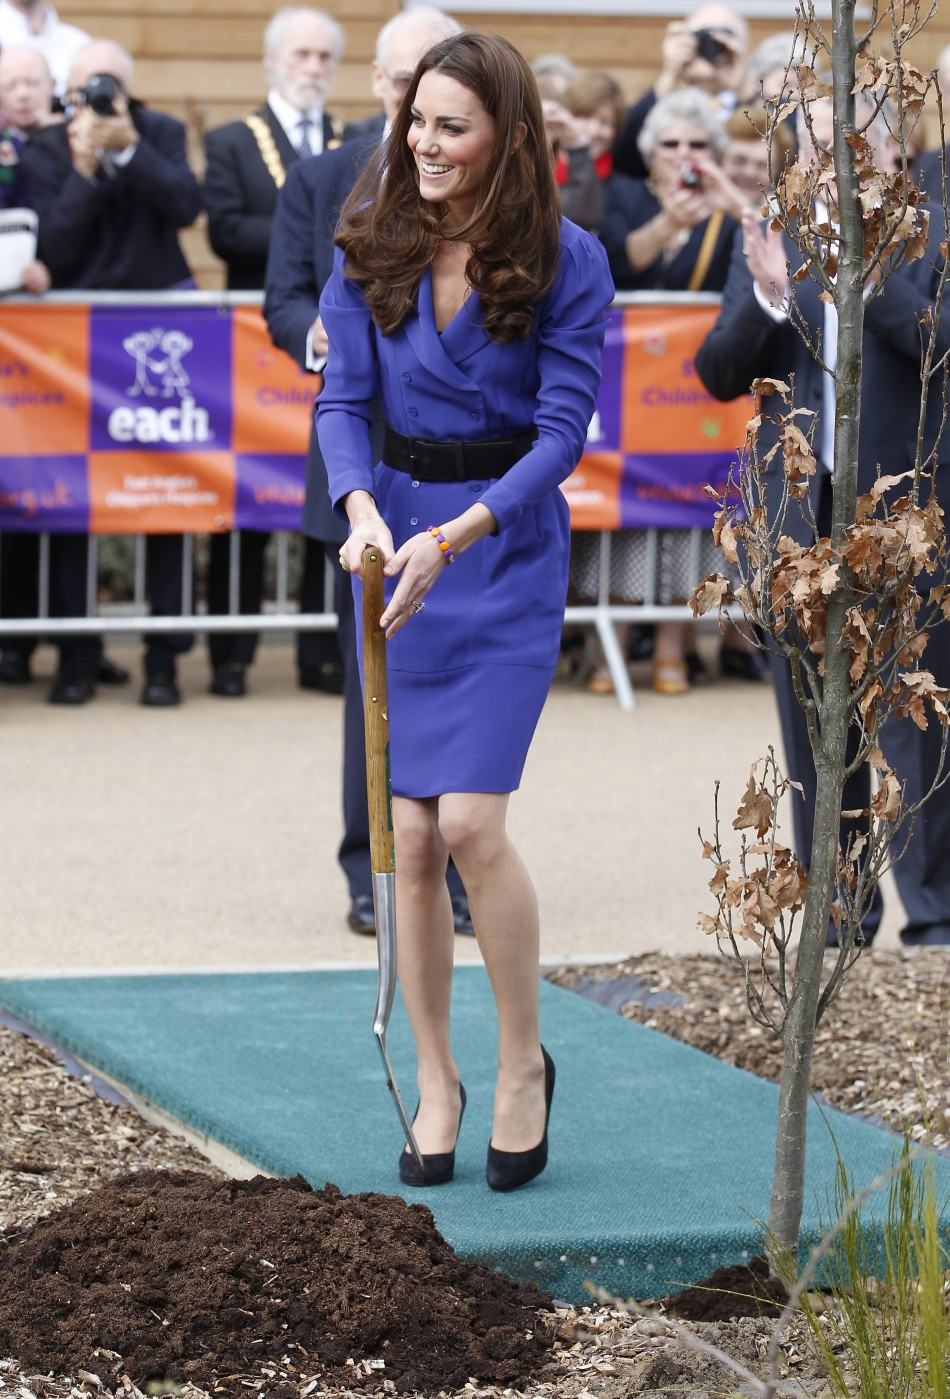 Britain's Catherine, Duchess of Cambridge plants a tree after opening a children's hospice in Ipswich